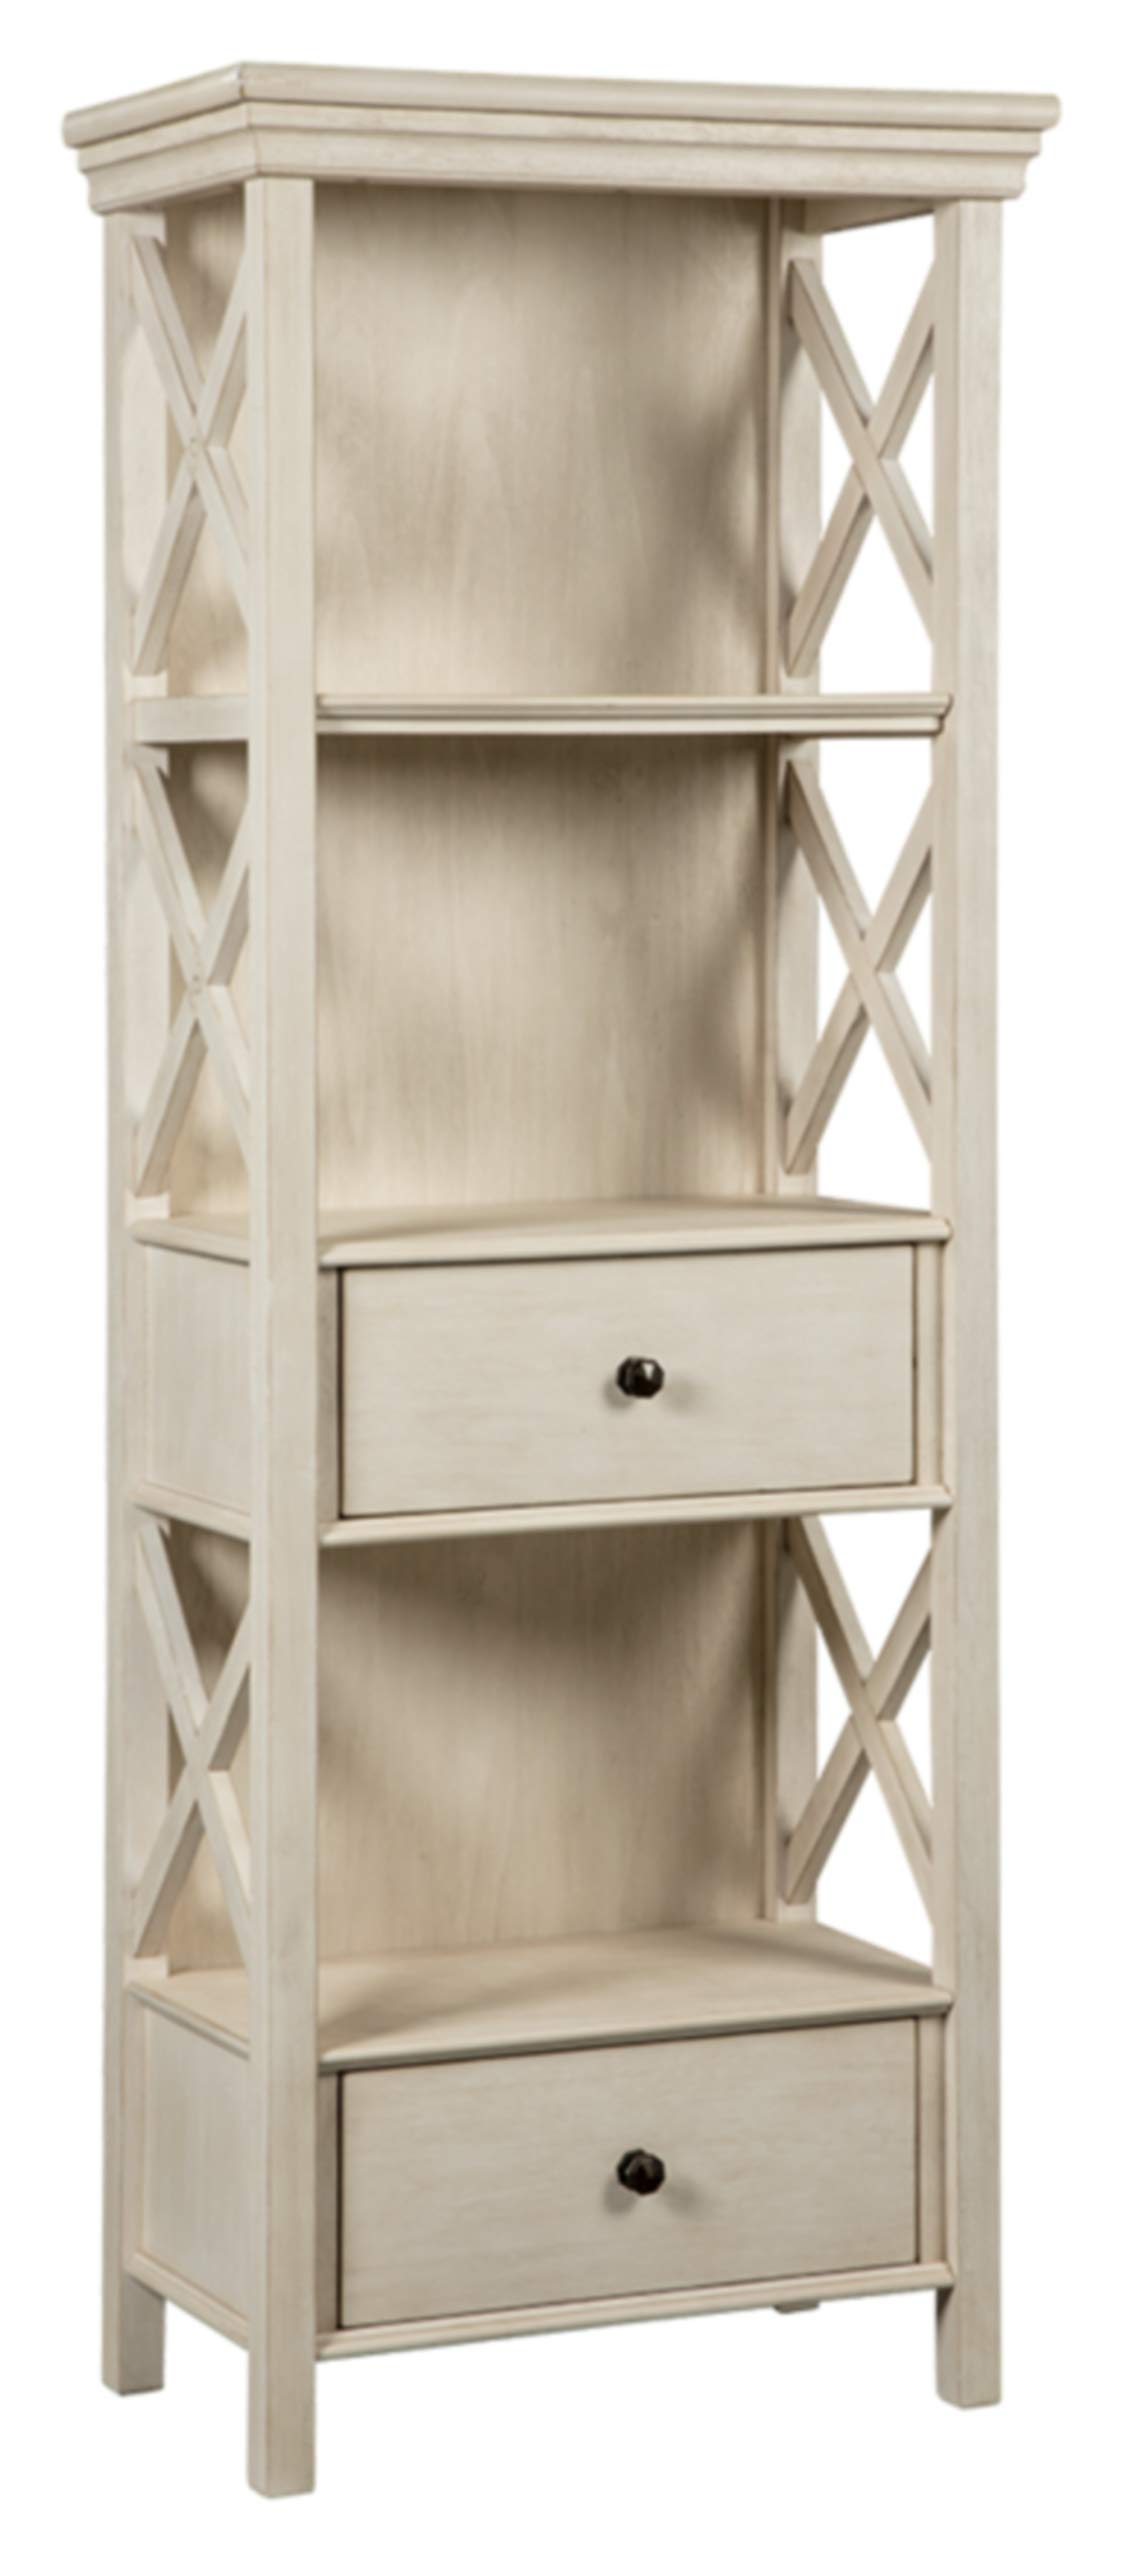 Ashley Furniture Signature Design - Bolanburg Display Cabinet - 2 Drawers - 3 Shelves - Antique White by Signature Design by Ashley